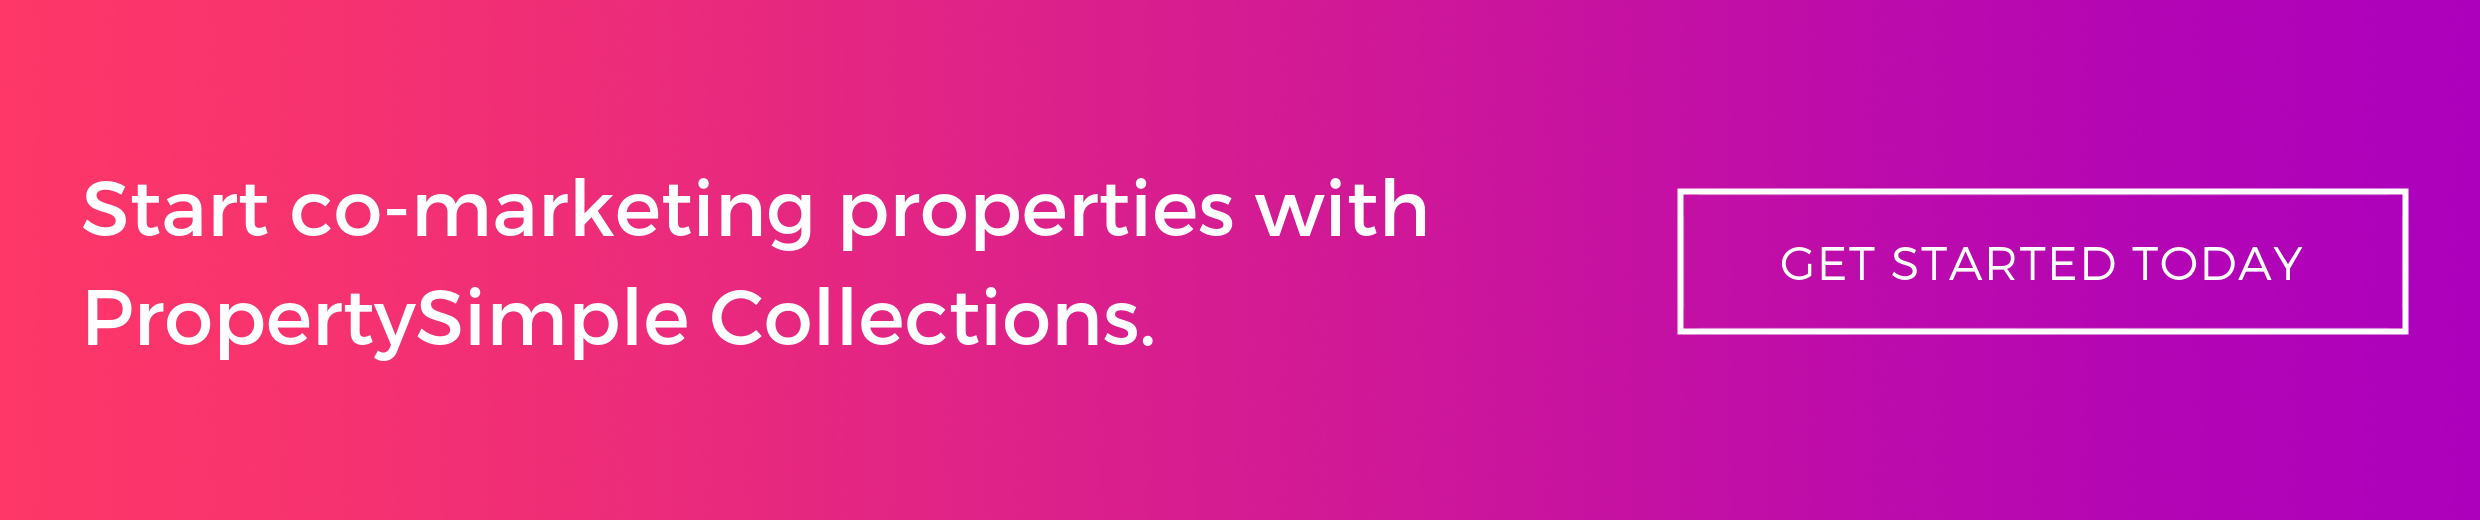 Start co-marketing properties with PropertySimple Collections